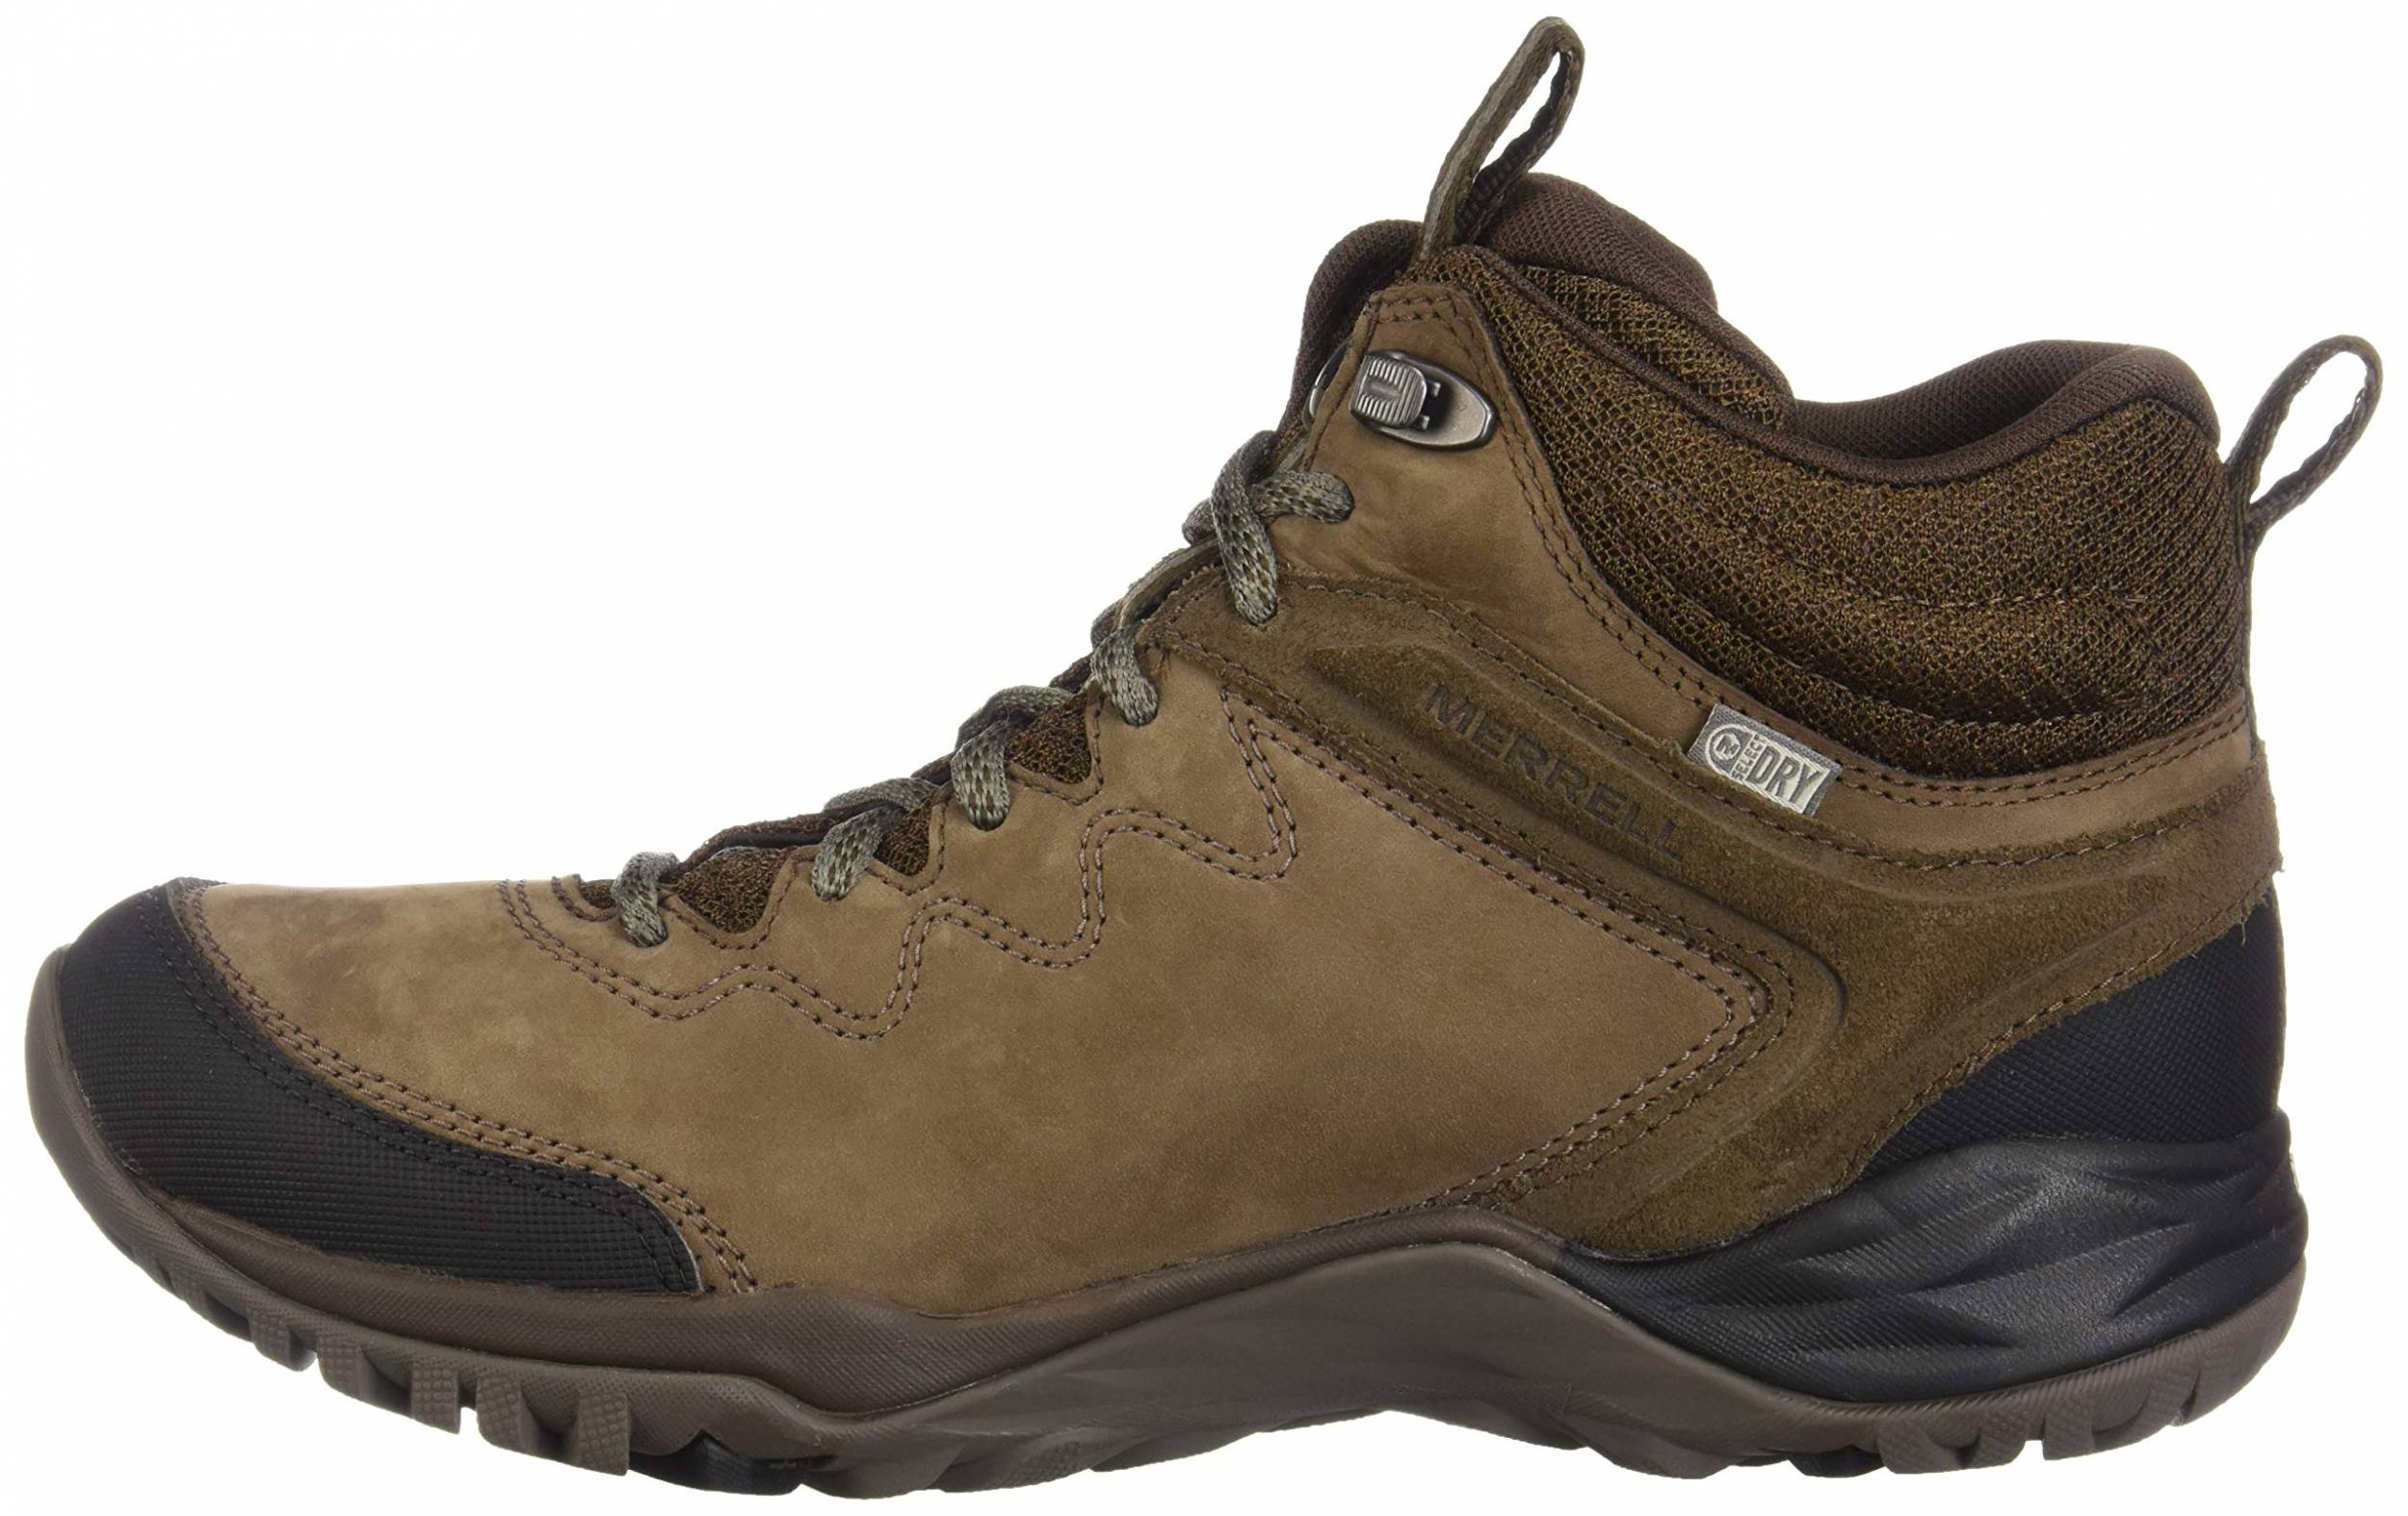 Only $89 + Review of Merrell Siren